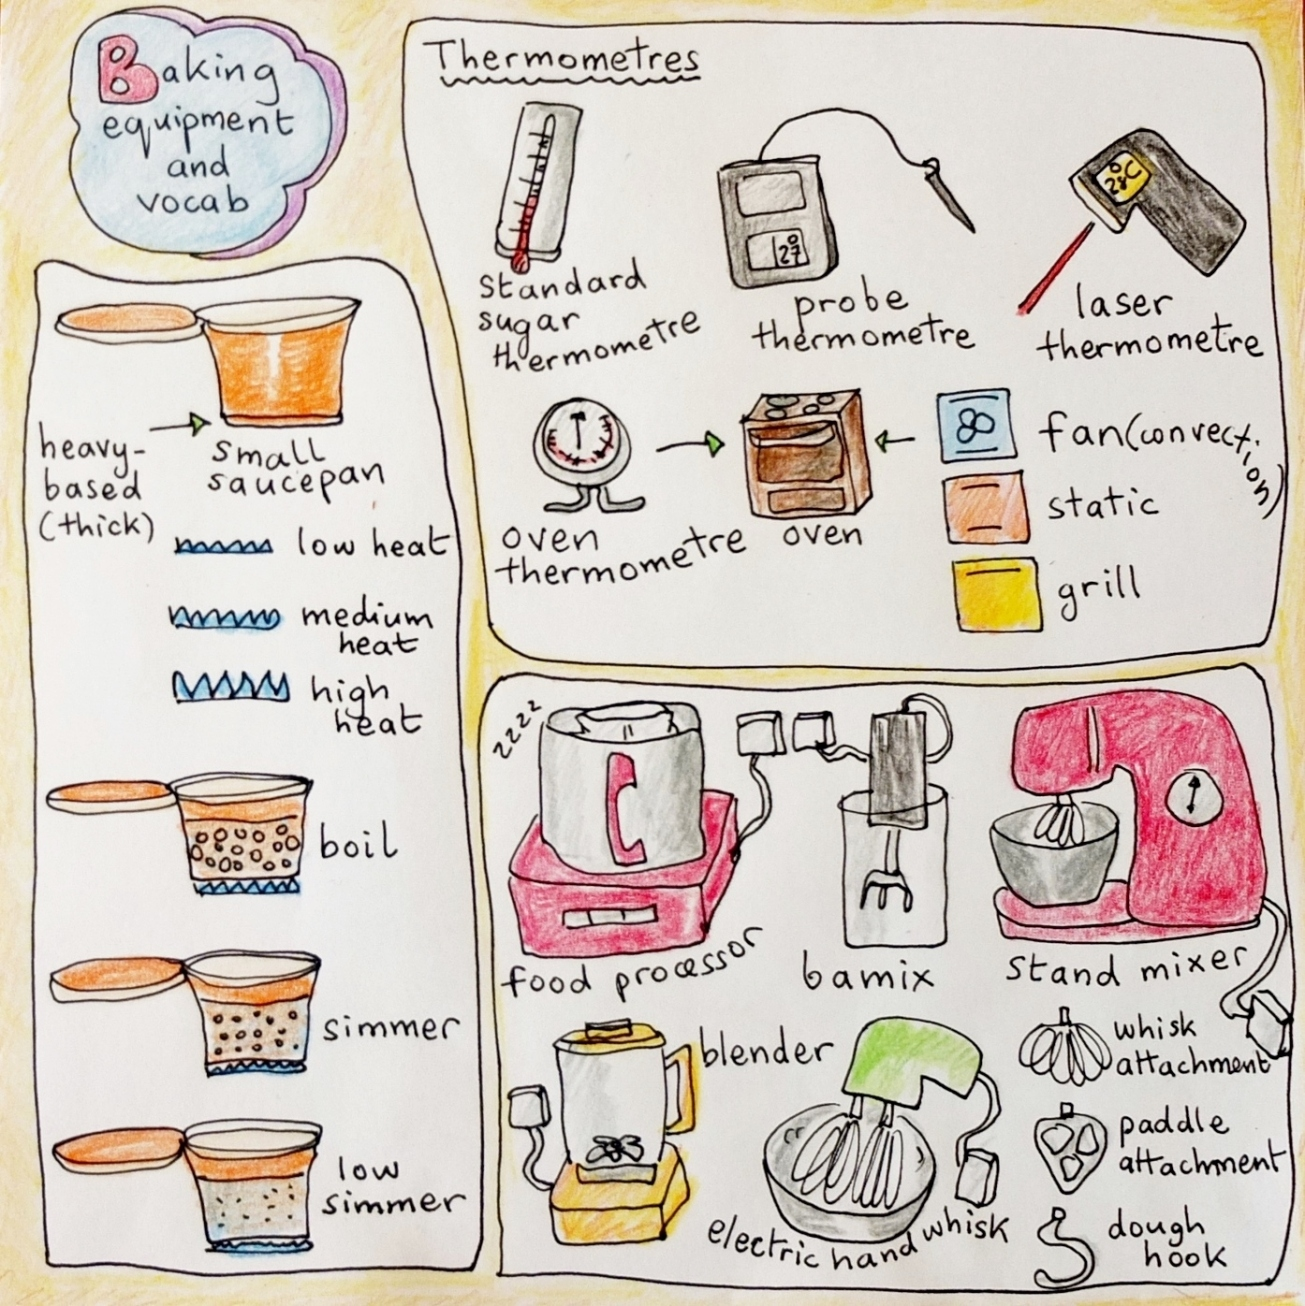 Baking equipment and vocab